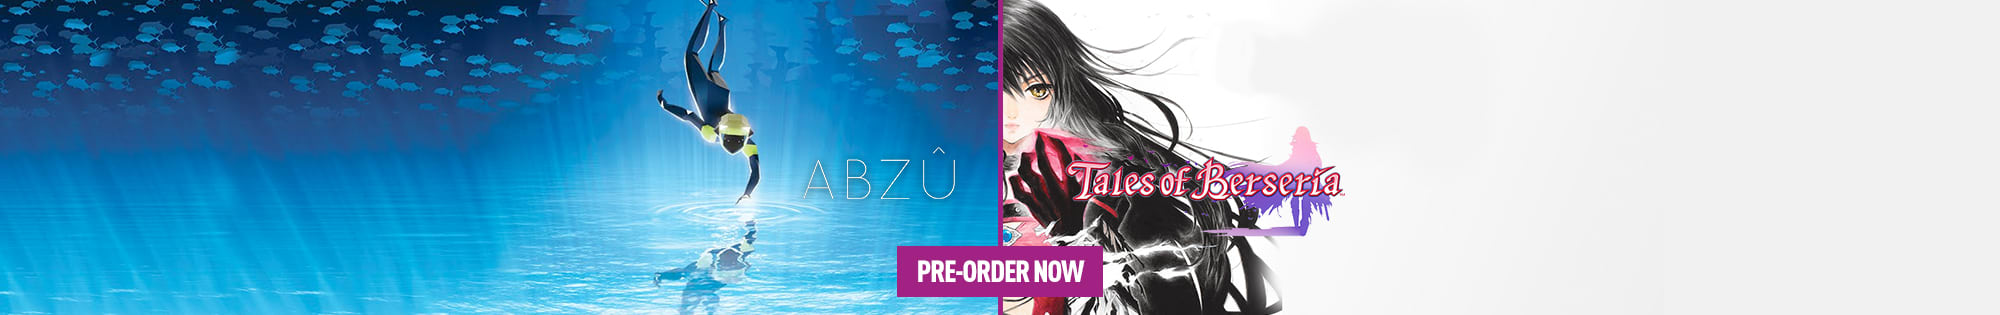 ABZU, Digimon World: Next Order and Tales of Beseria for PS4 and PC Download - Pre-order Now at GAME.co.uk